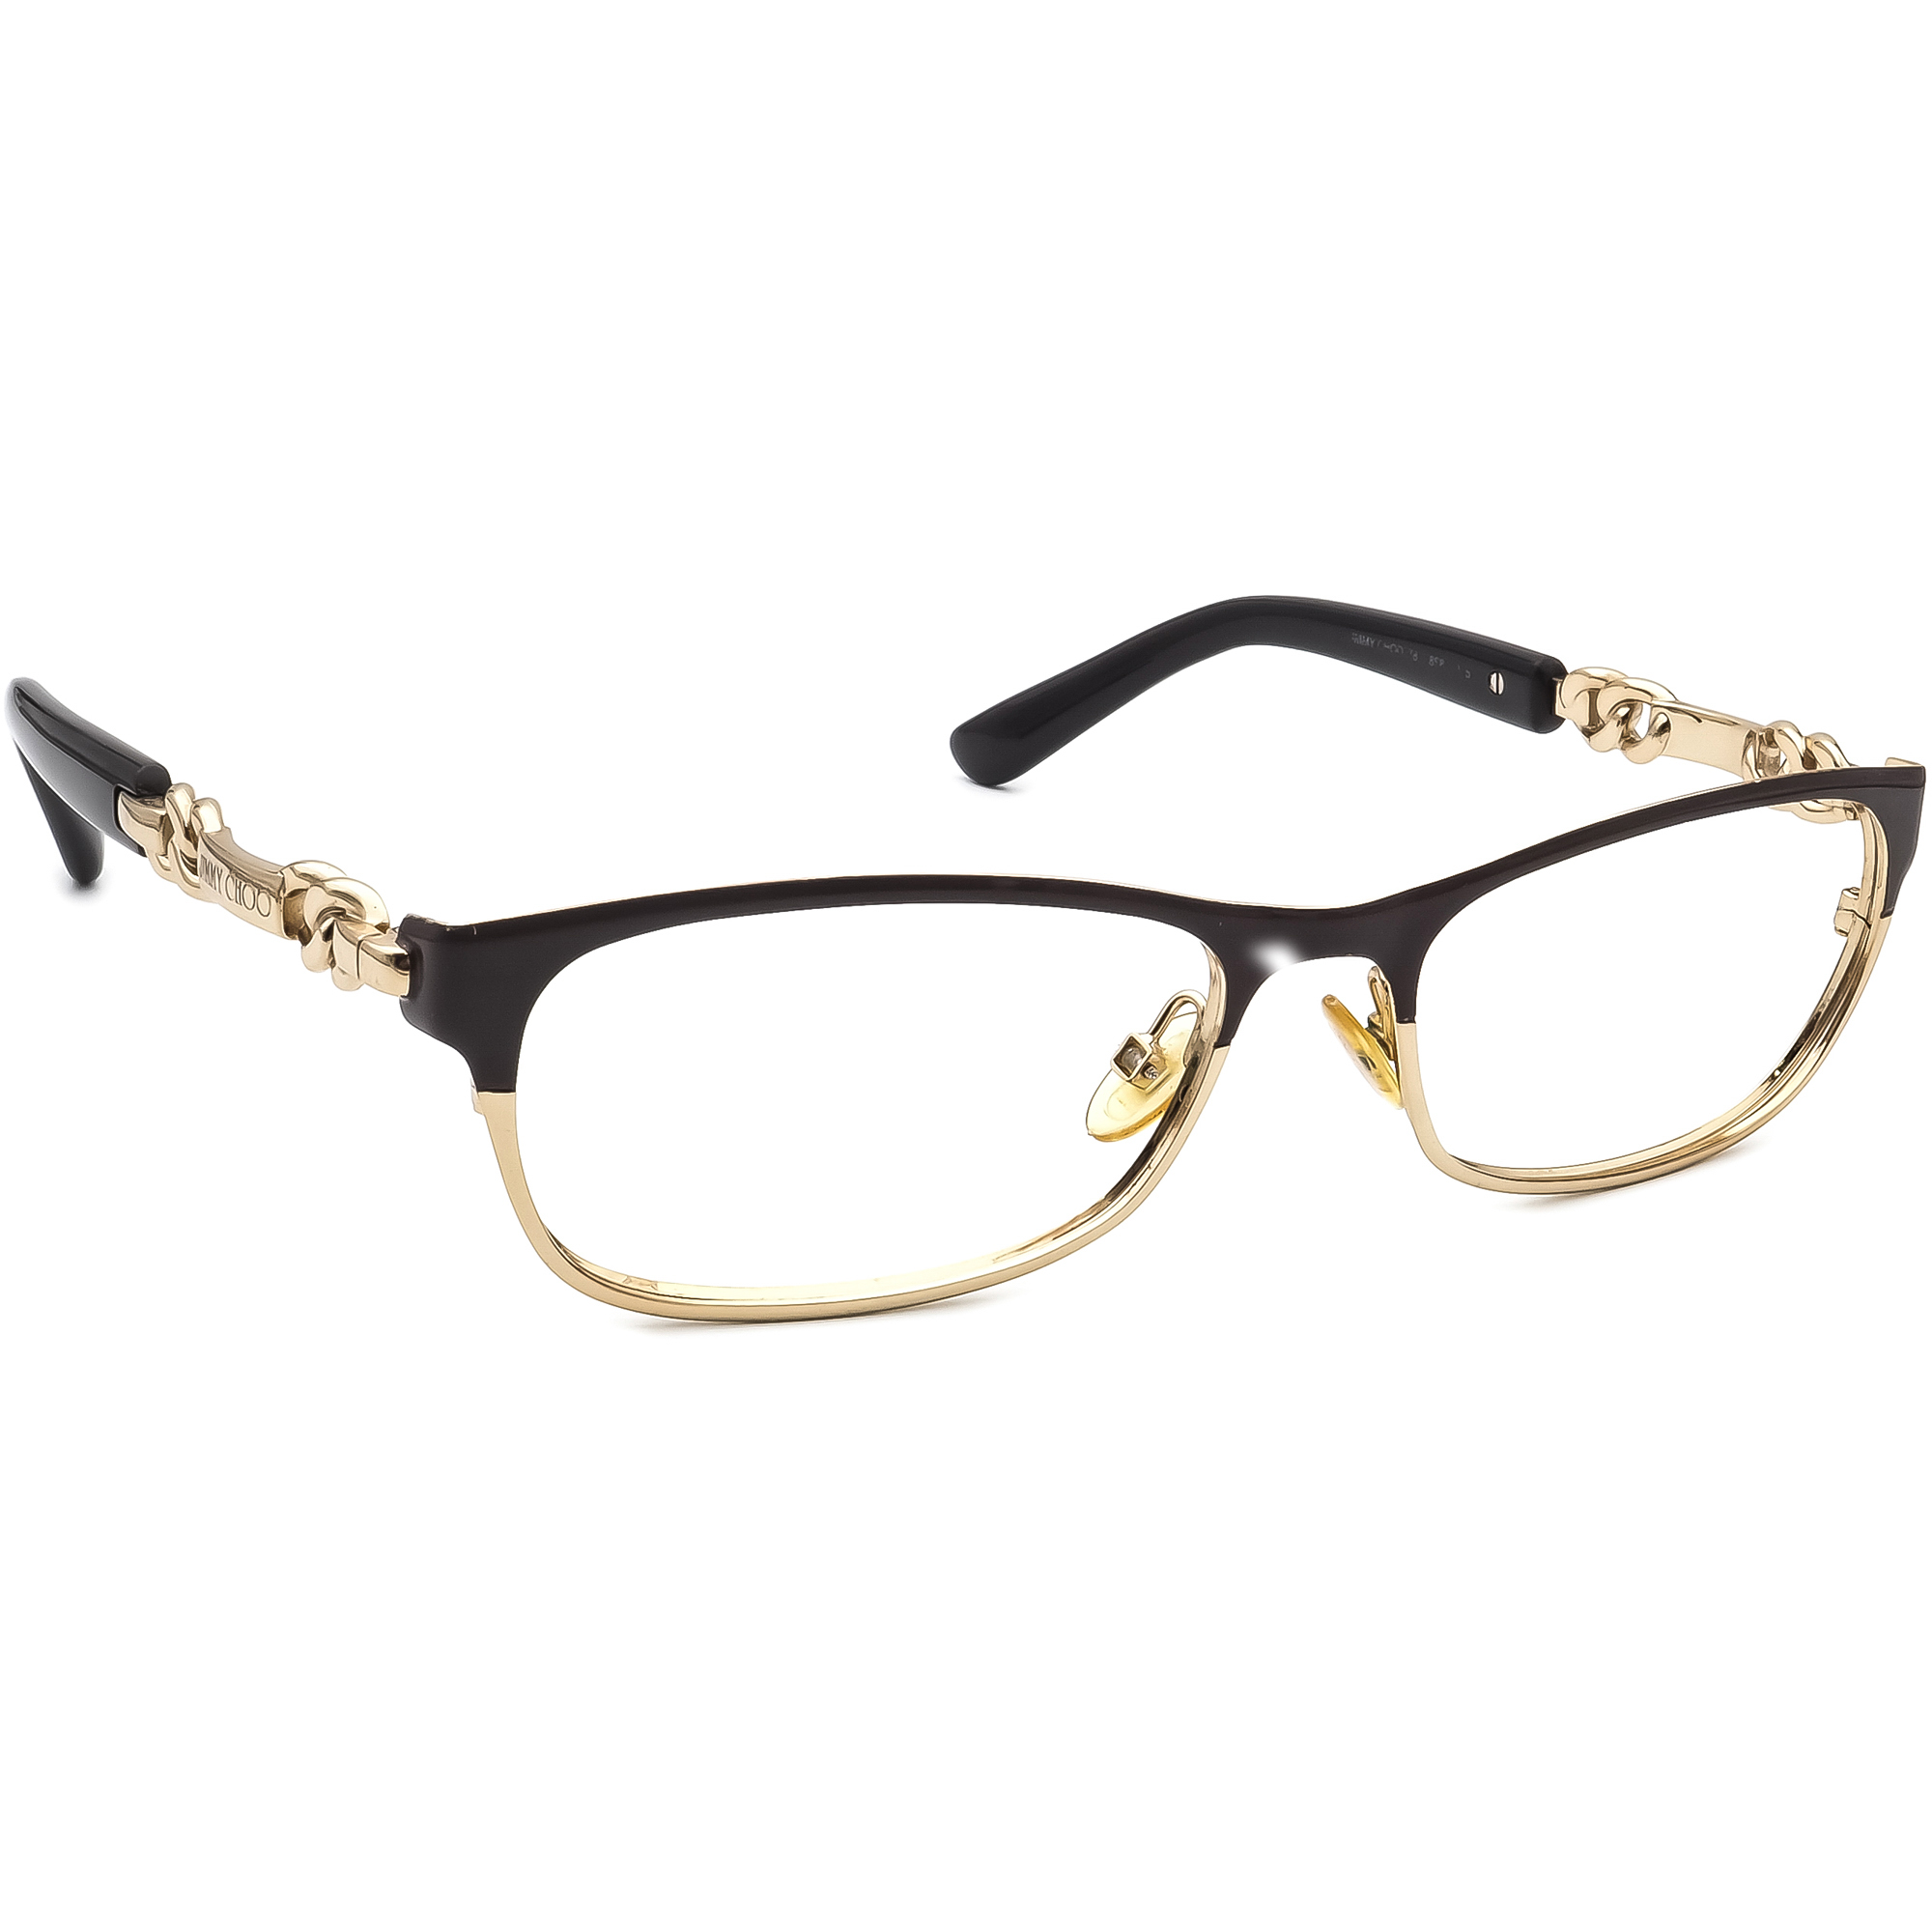 Jimmy Choo 78 8S8 Eyeglasses